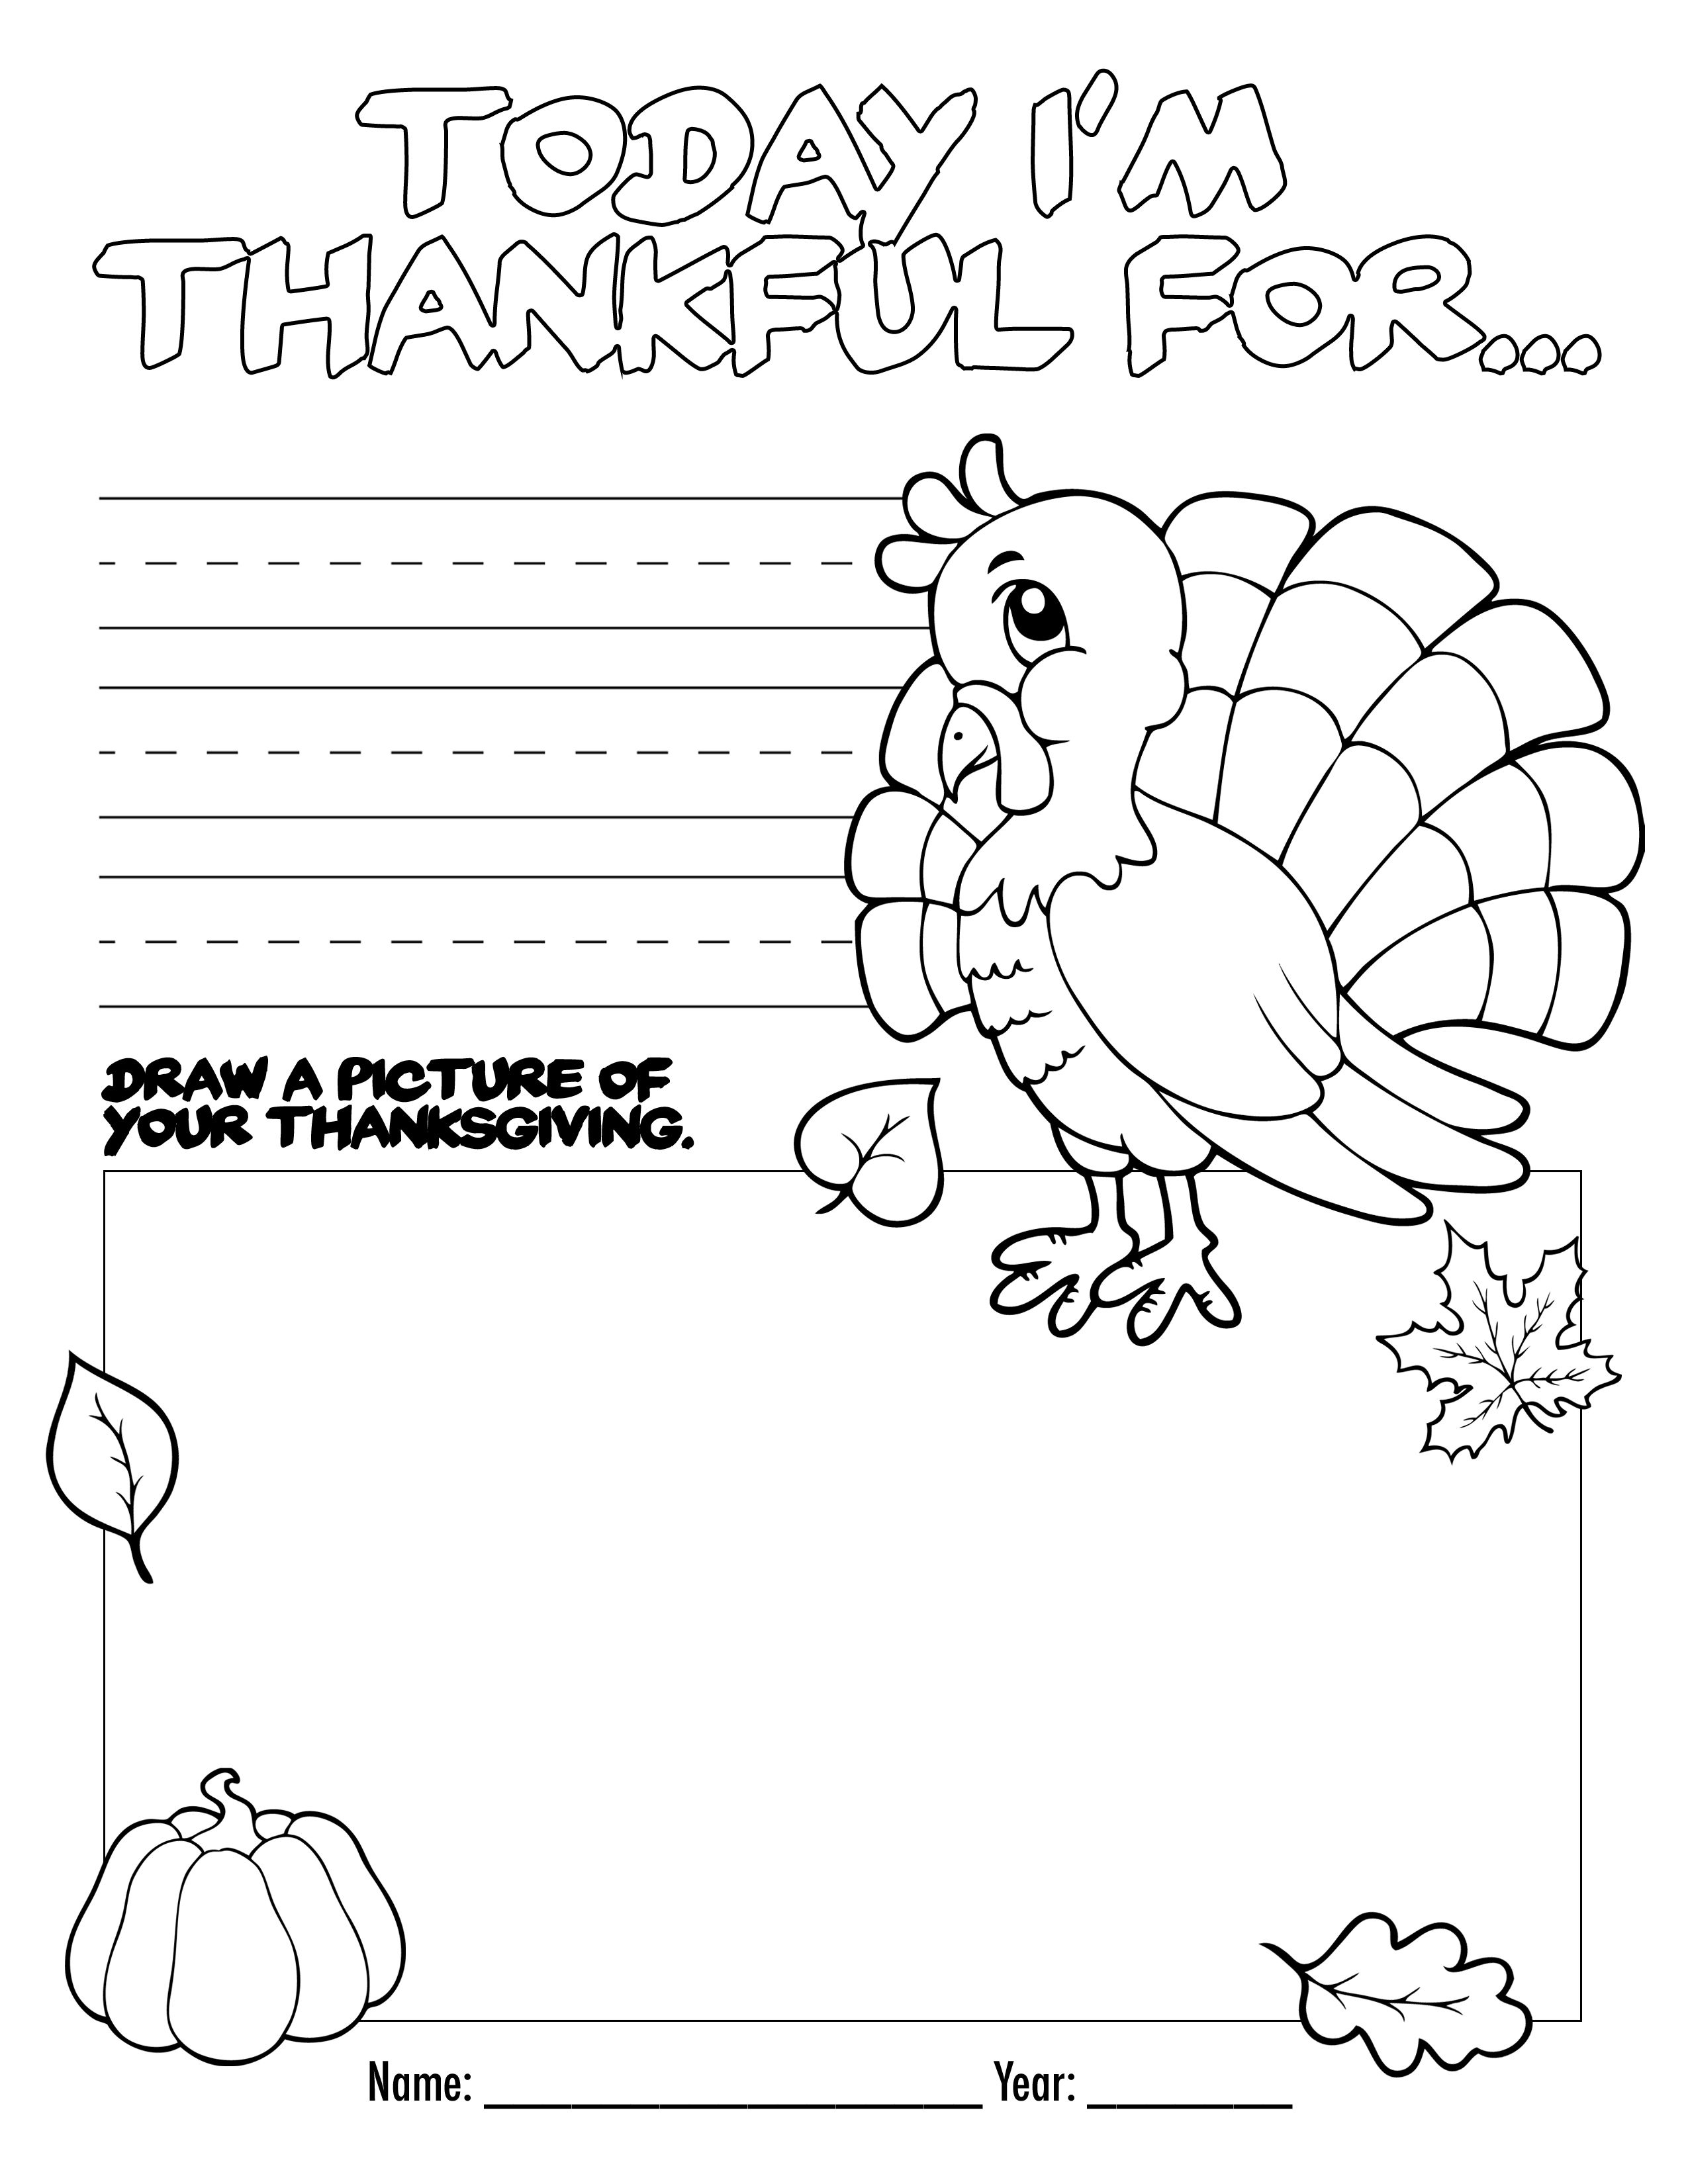 Thanksgiving Coloring Book Free Printable For The Kids!   Bloggers - Free Thanksgiving Mini Book Printable